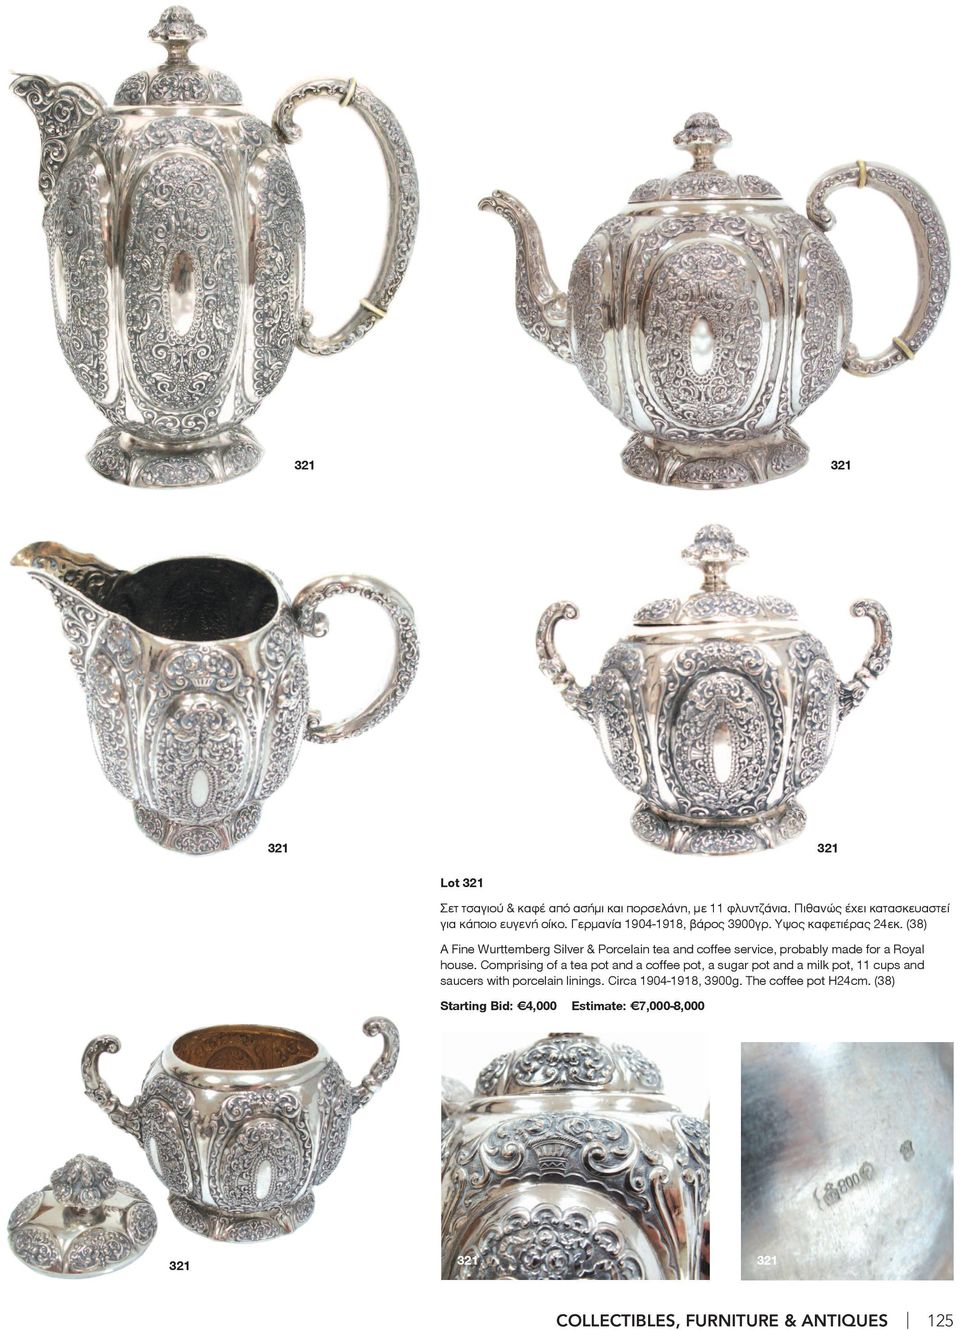 (38) A Fine Wurttemberg Silver & Porcelain tea and coffee service, probably made for a Royal house.